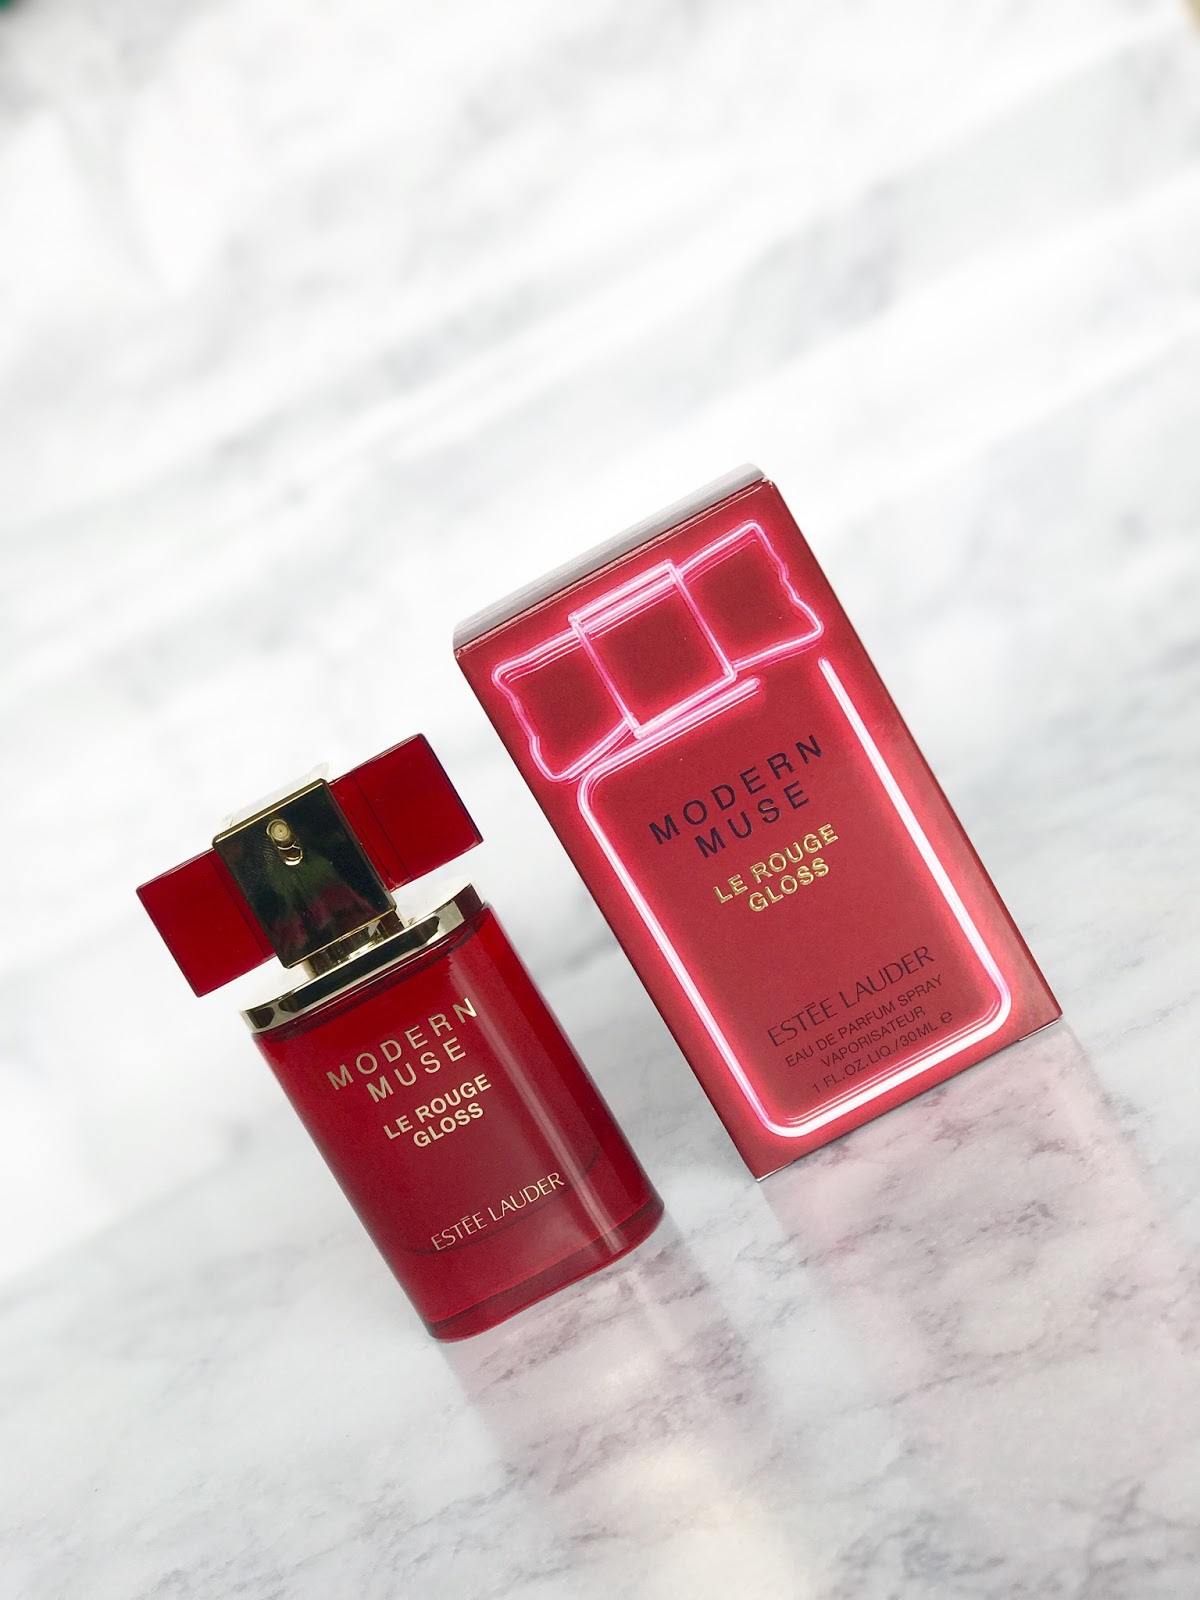 esteem lauder modern muse le rogue fragrance